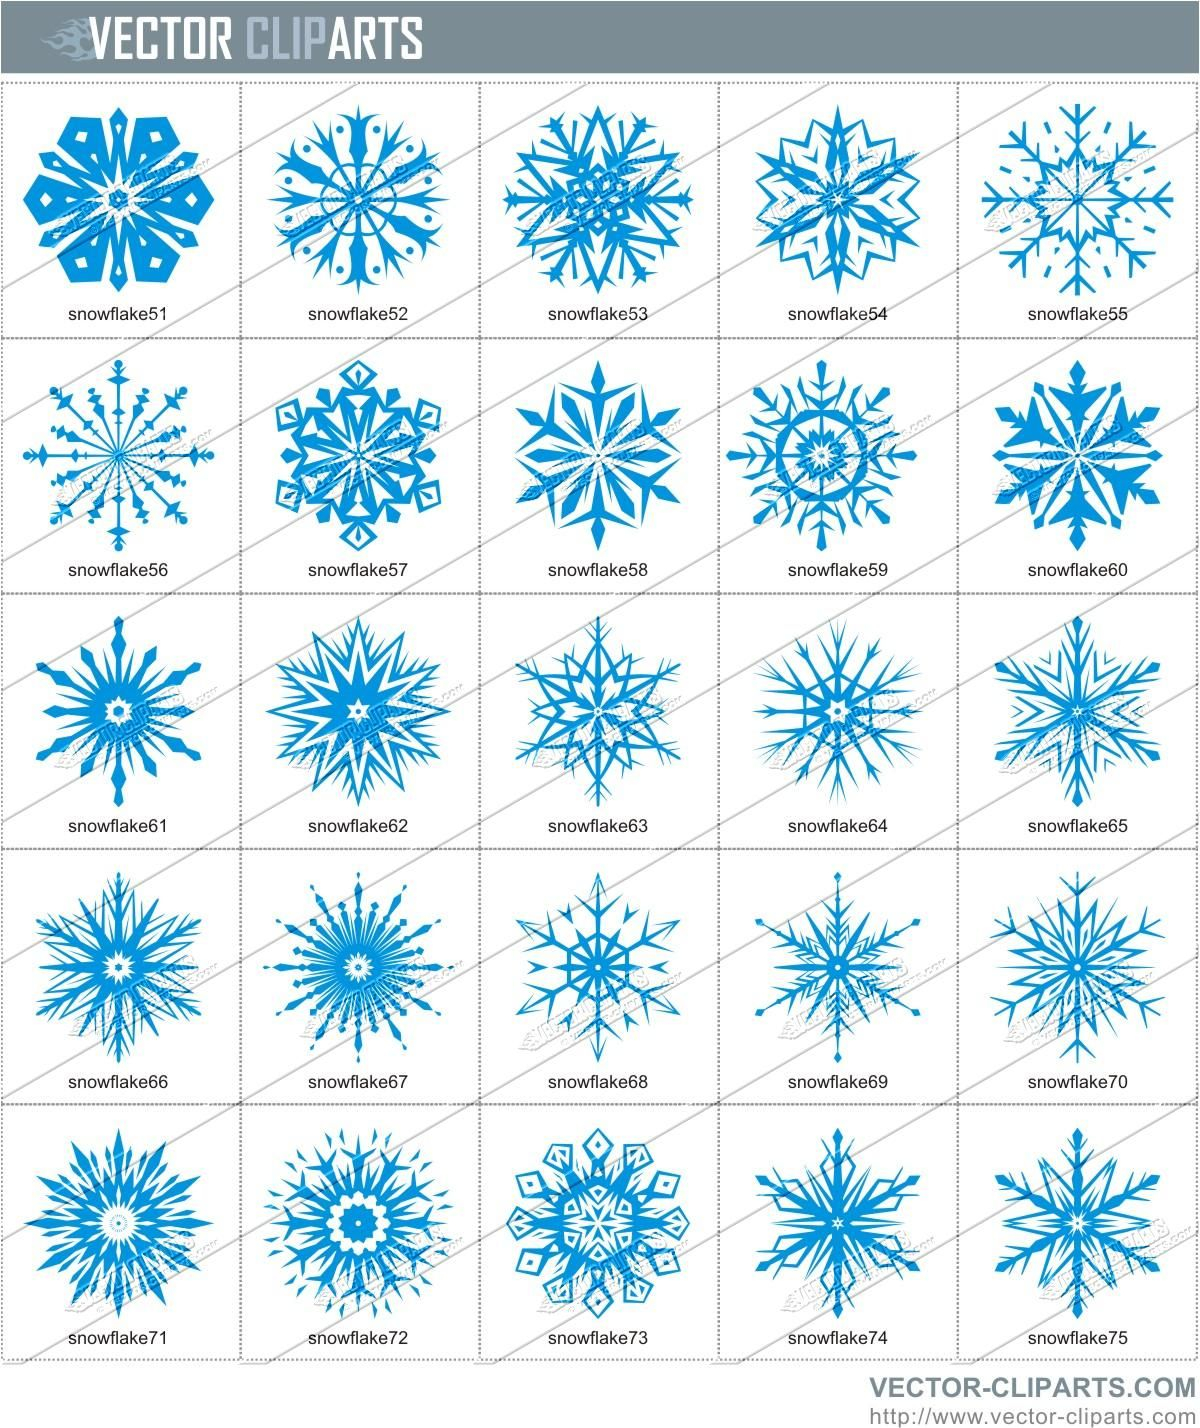 Snow Flakes Clip Art | Simple Snowflakes Clipart III - vinyl-ready ...